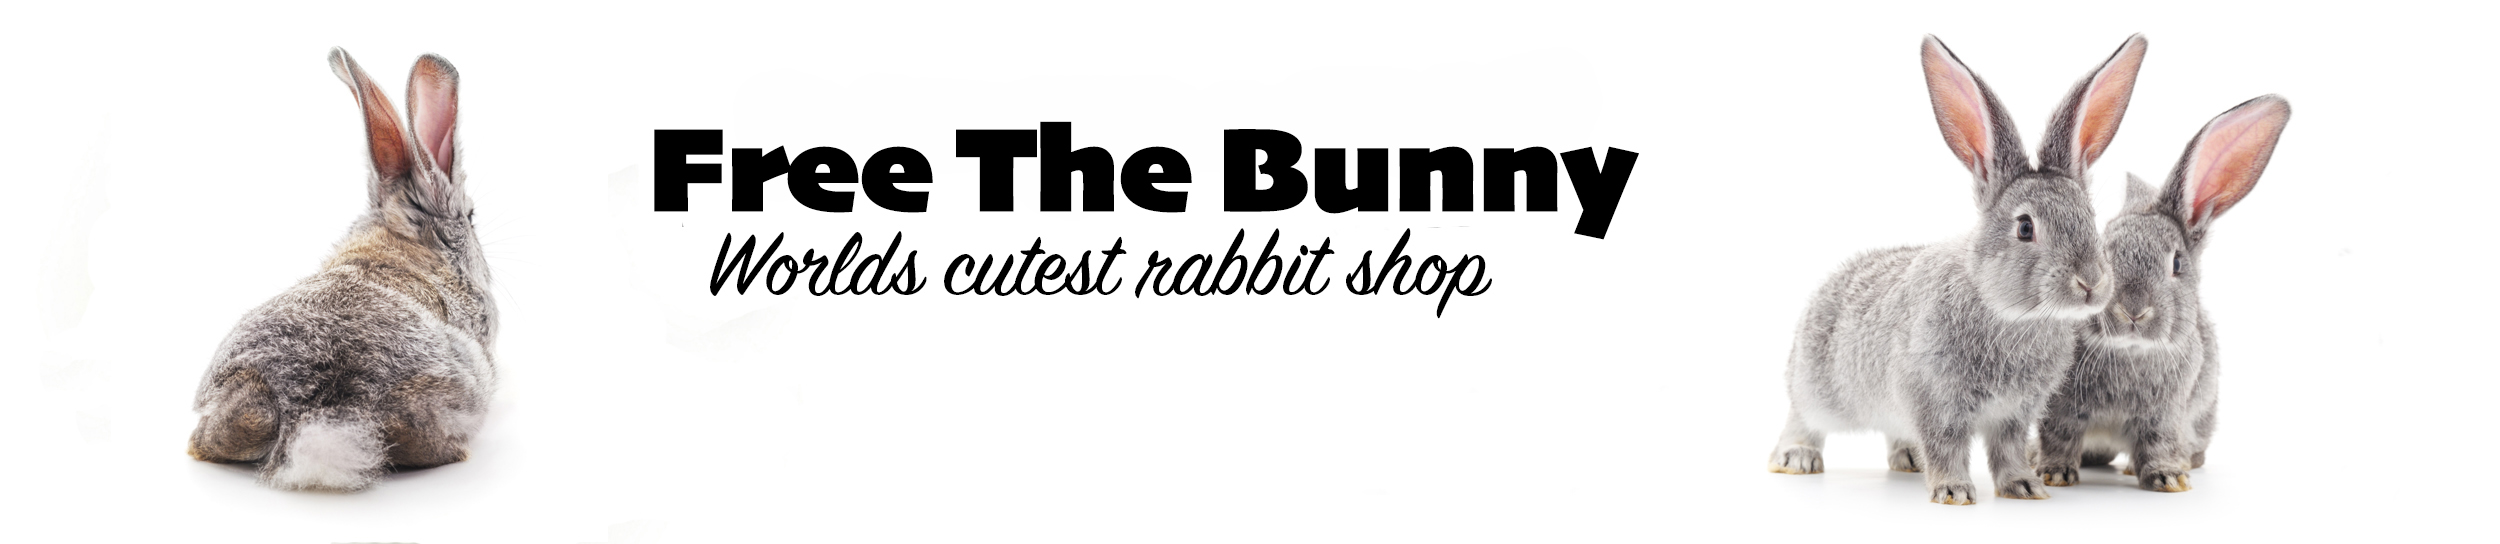 free the bunny worlds cutest rabbit shop